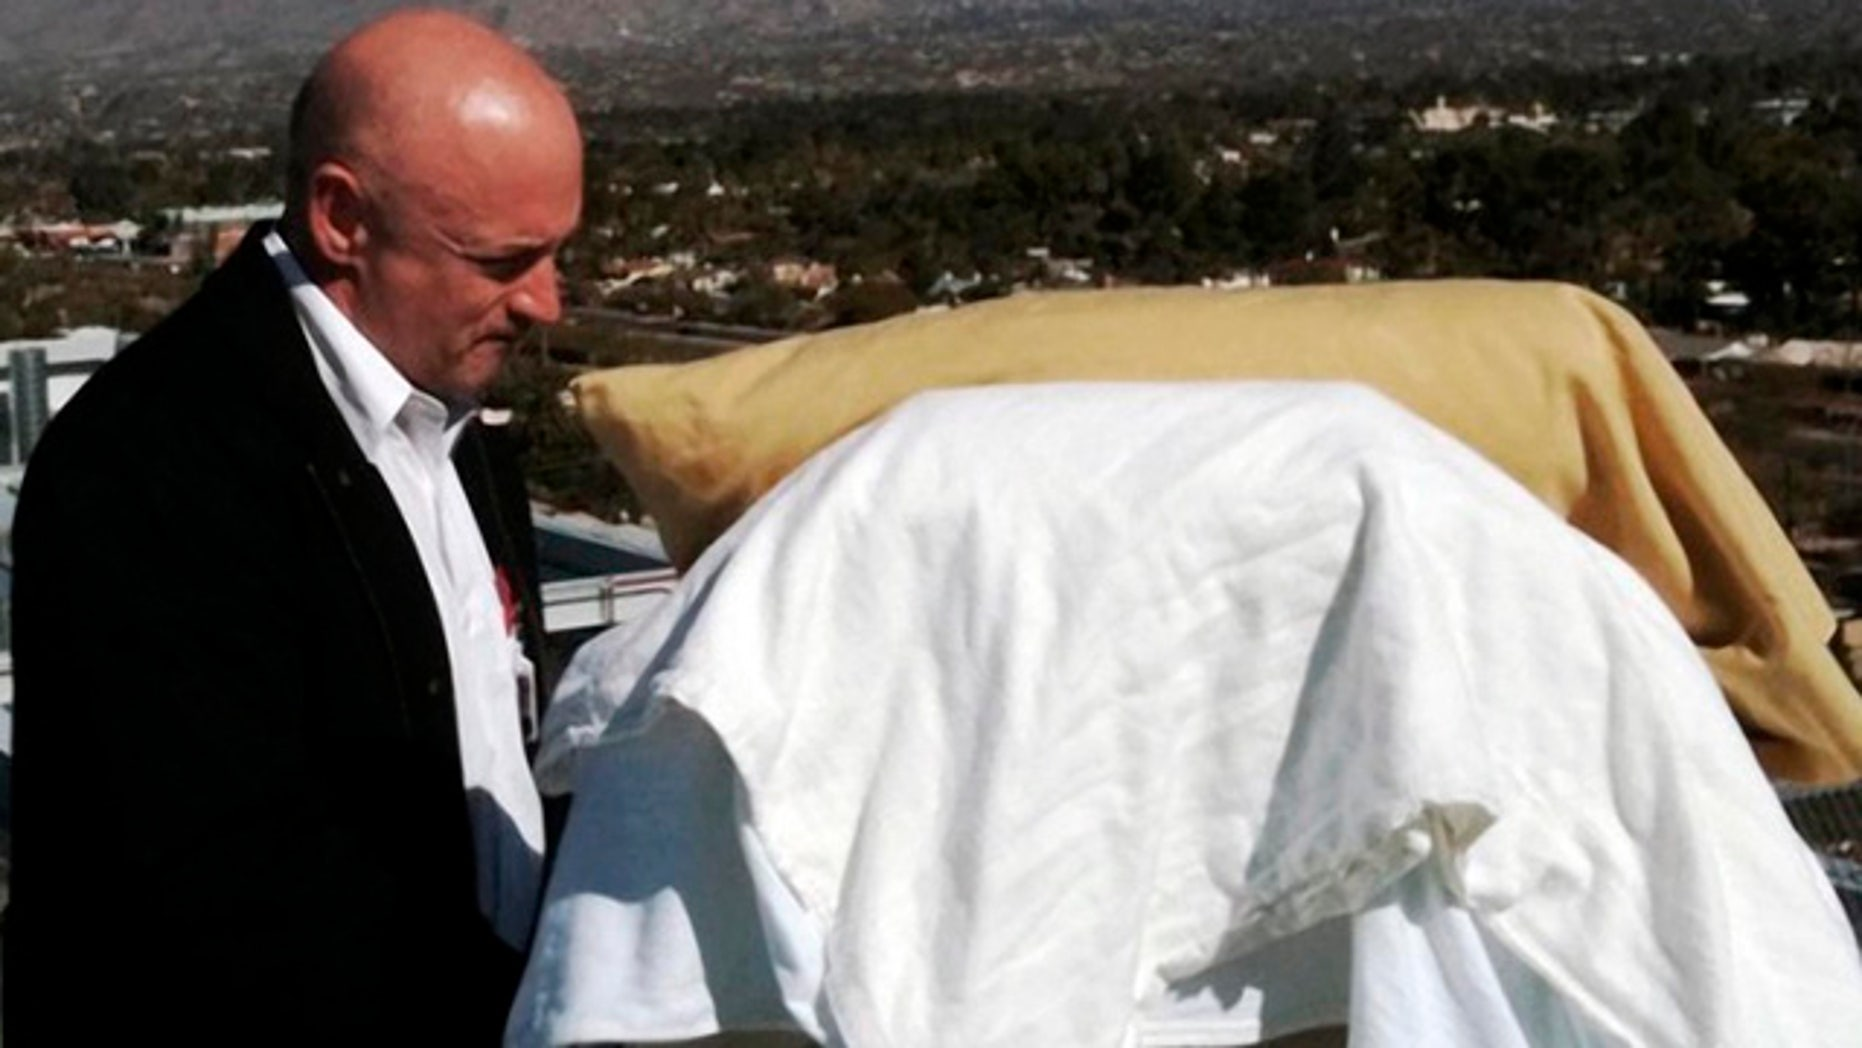 In this photo provided by the office of U.S. Rep Gabrielle Giffords, Giffords' husband, Mark Kelly, stands with his wife as she looks from her bed at the Santa Catalina Mountains while on an outdoor deck at University Medical Center in Tucson, Ariz., Thursday, Jan. 20, 2011. Giffords is scheduled to be flown to Houston on Friday to begin her rehabilitation. (AP Photo/Office of U.S. Rep. Gabrielle Giffords)